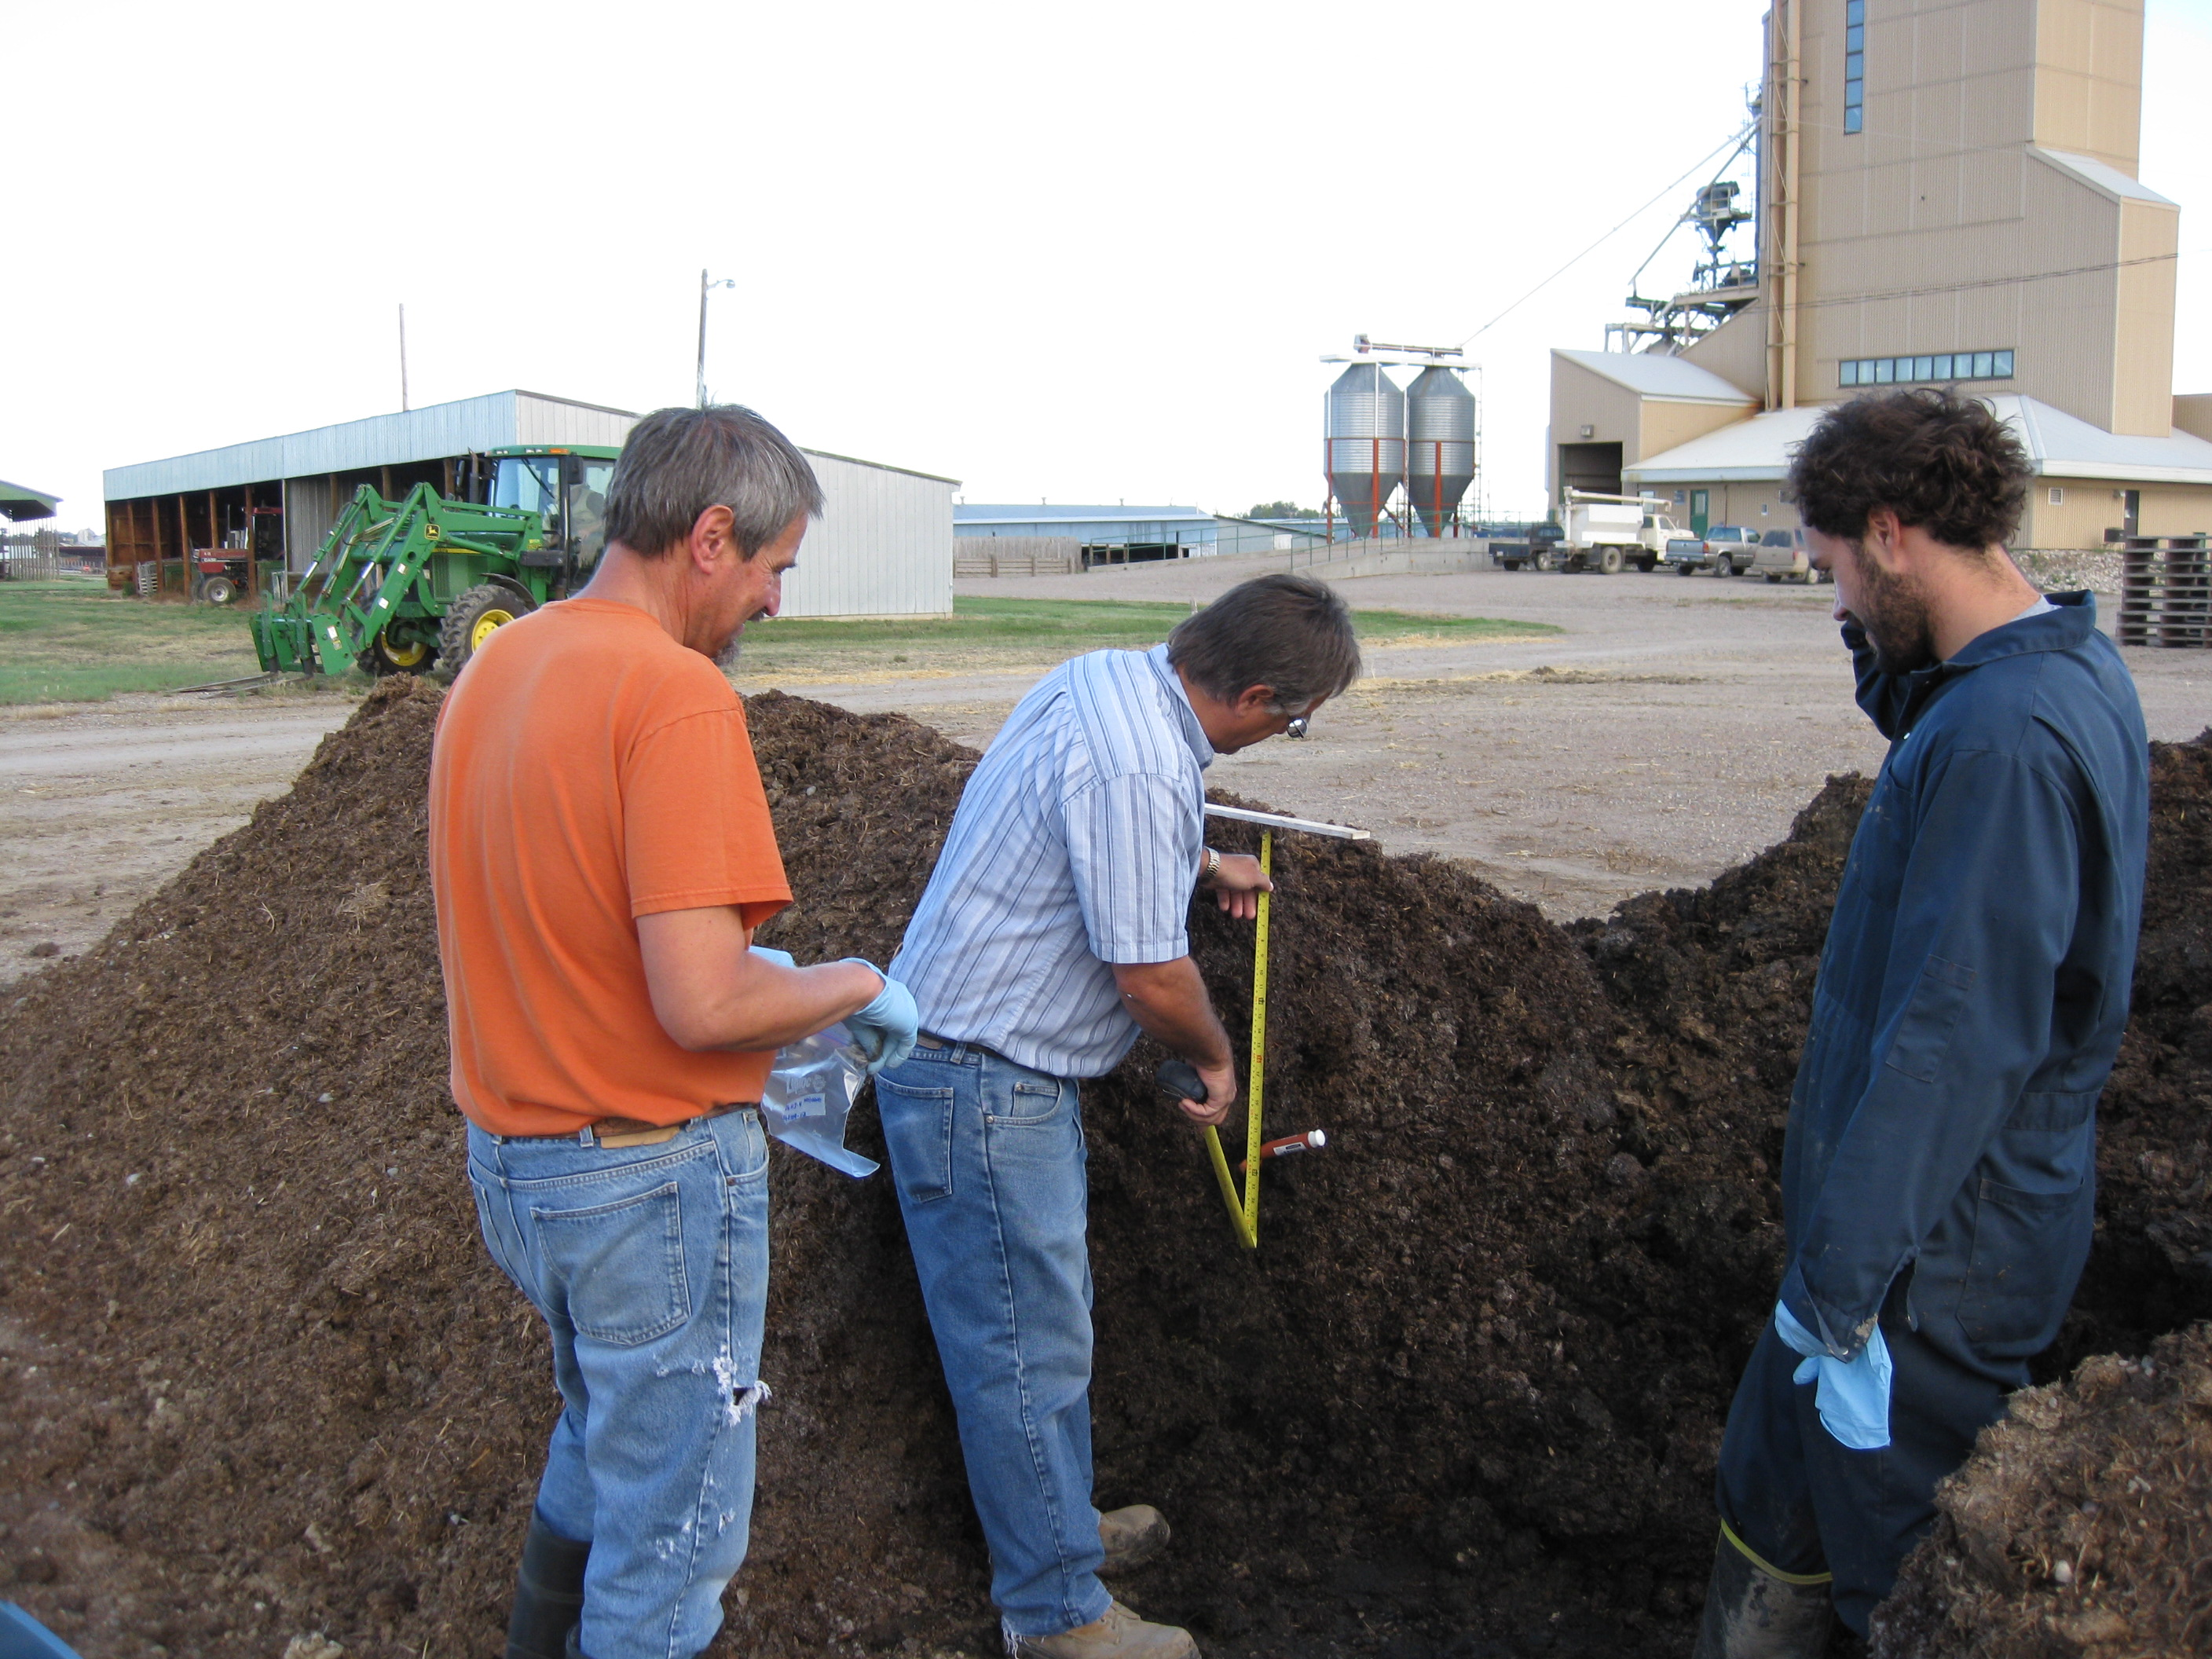 Three researchers examining compost outdoors.